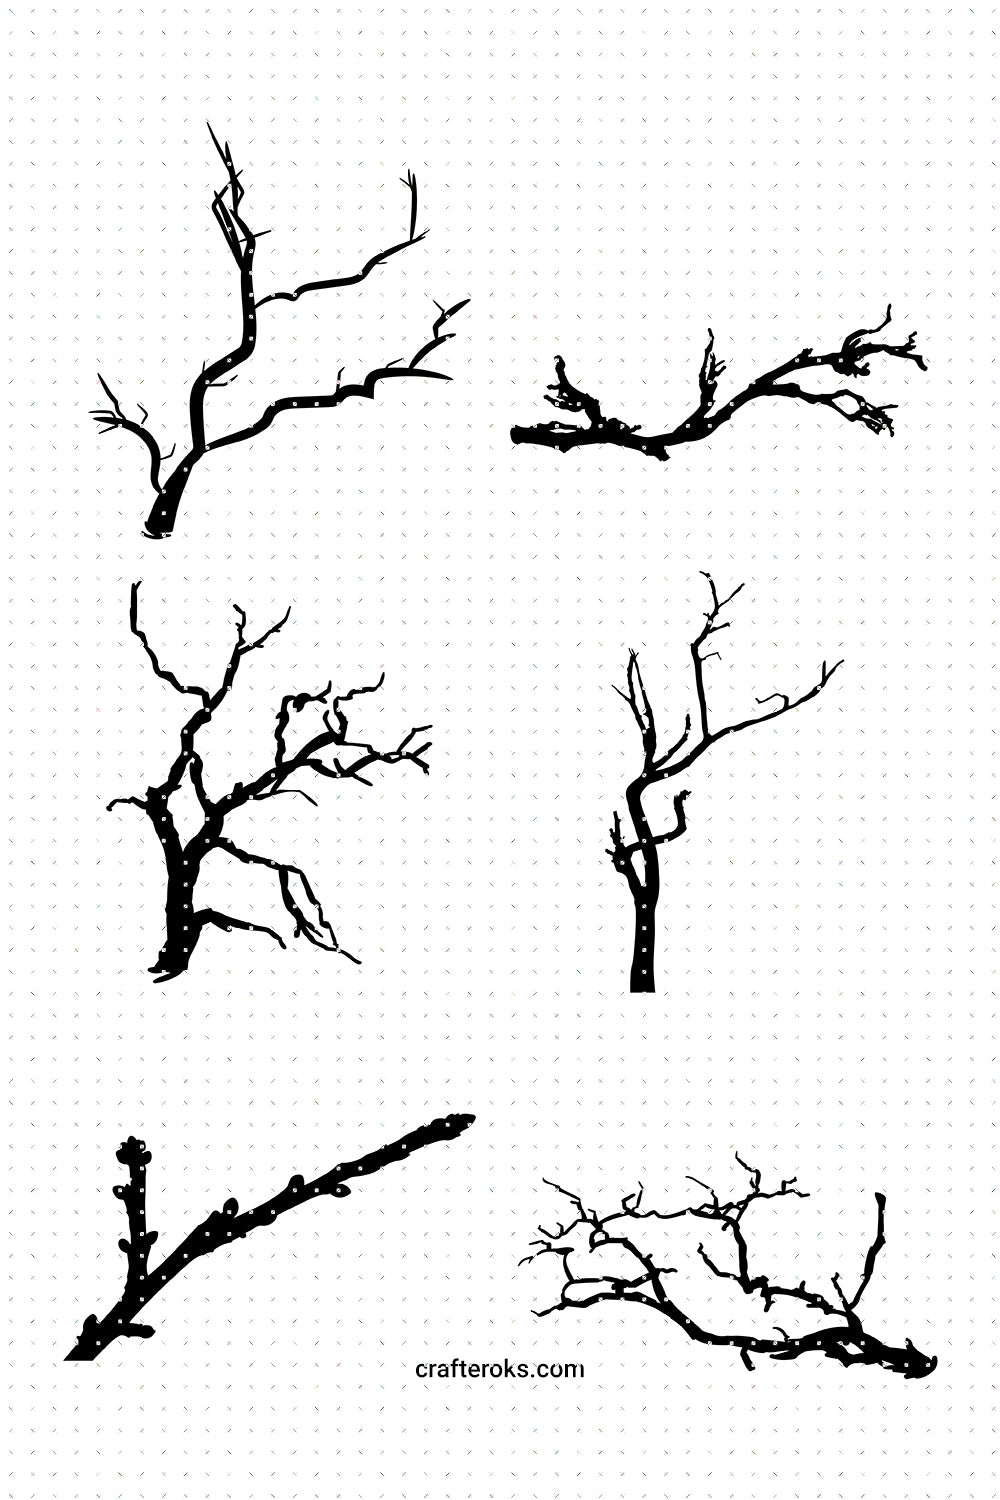 FREE tree branch SVG, PNG, DXF, clipart, EPS, vector cut file instant download for Personal Use